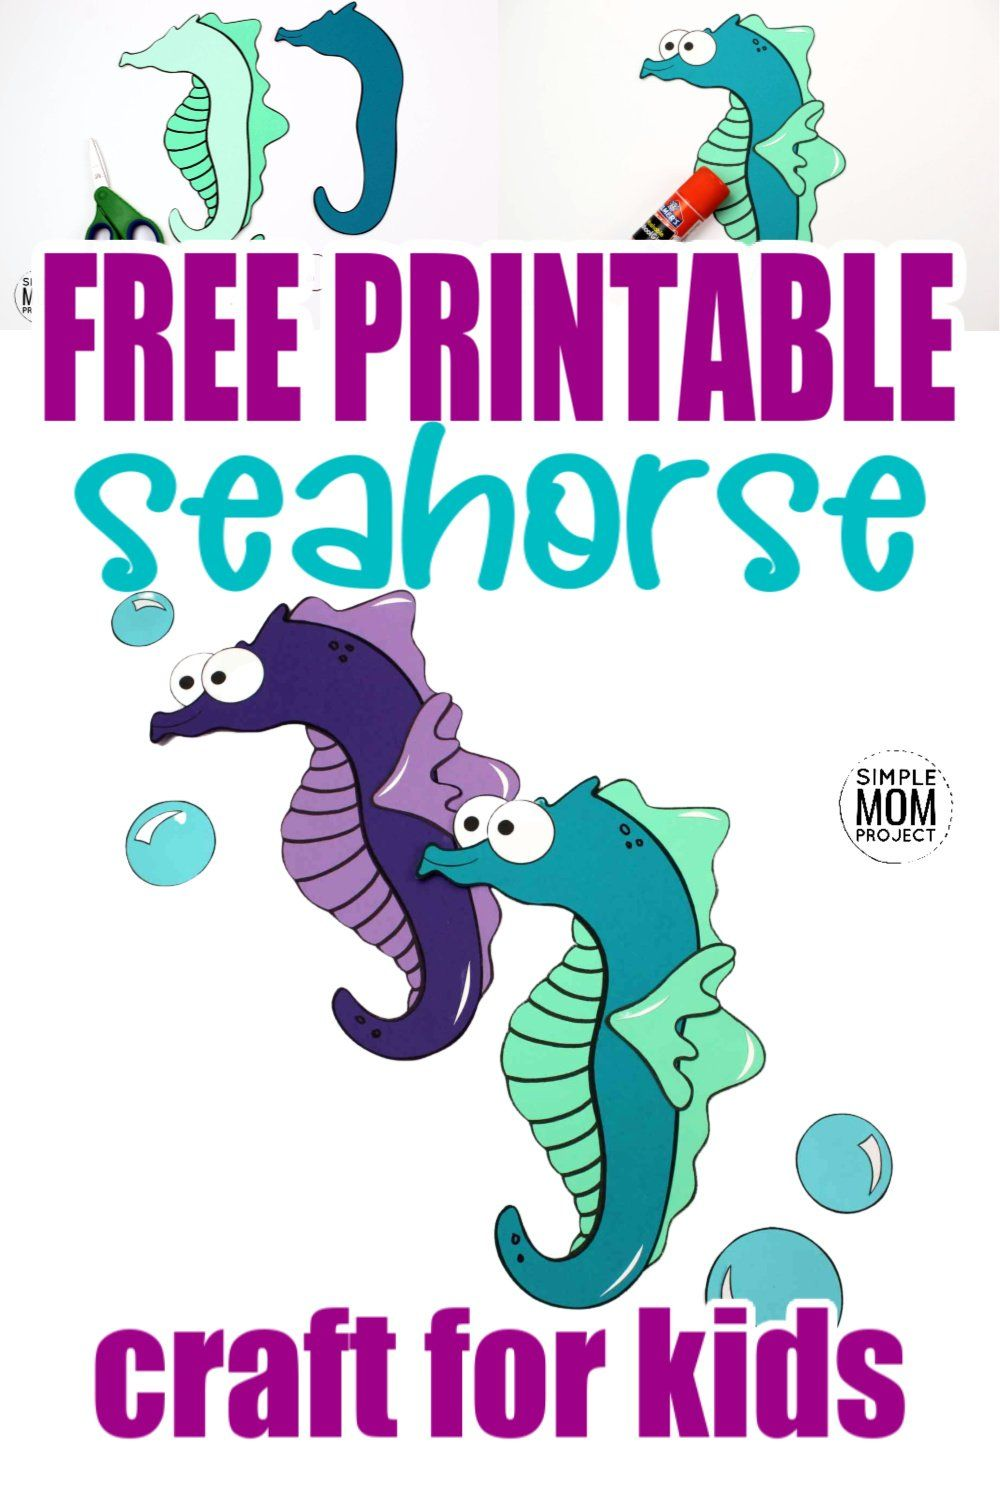 Fun Seahorse Craft For Kids With Free Seahorse Template Seahorse Crafts Ocean Animal Crafts Animal Crafts For Kids [ 1500 x 1000 Pixel ]